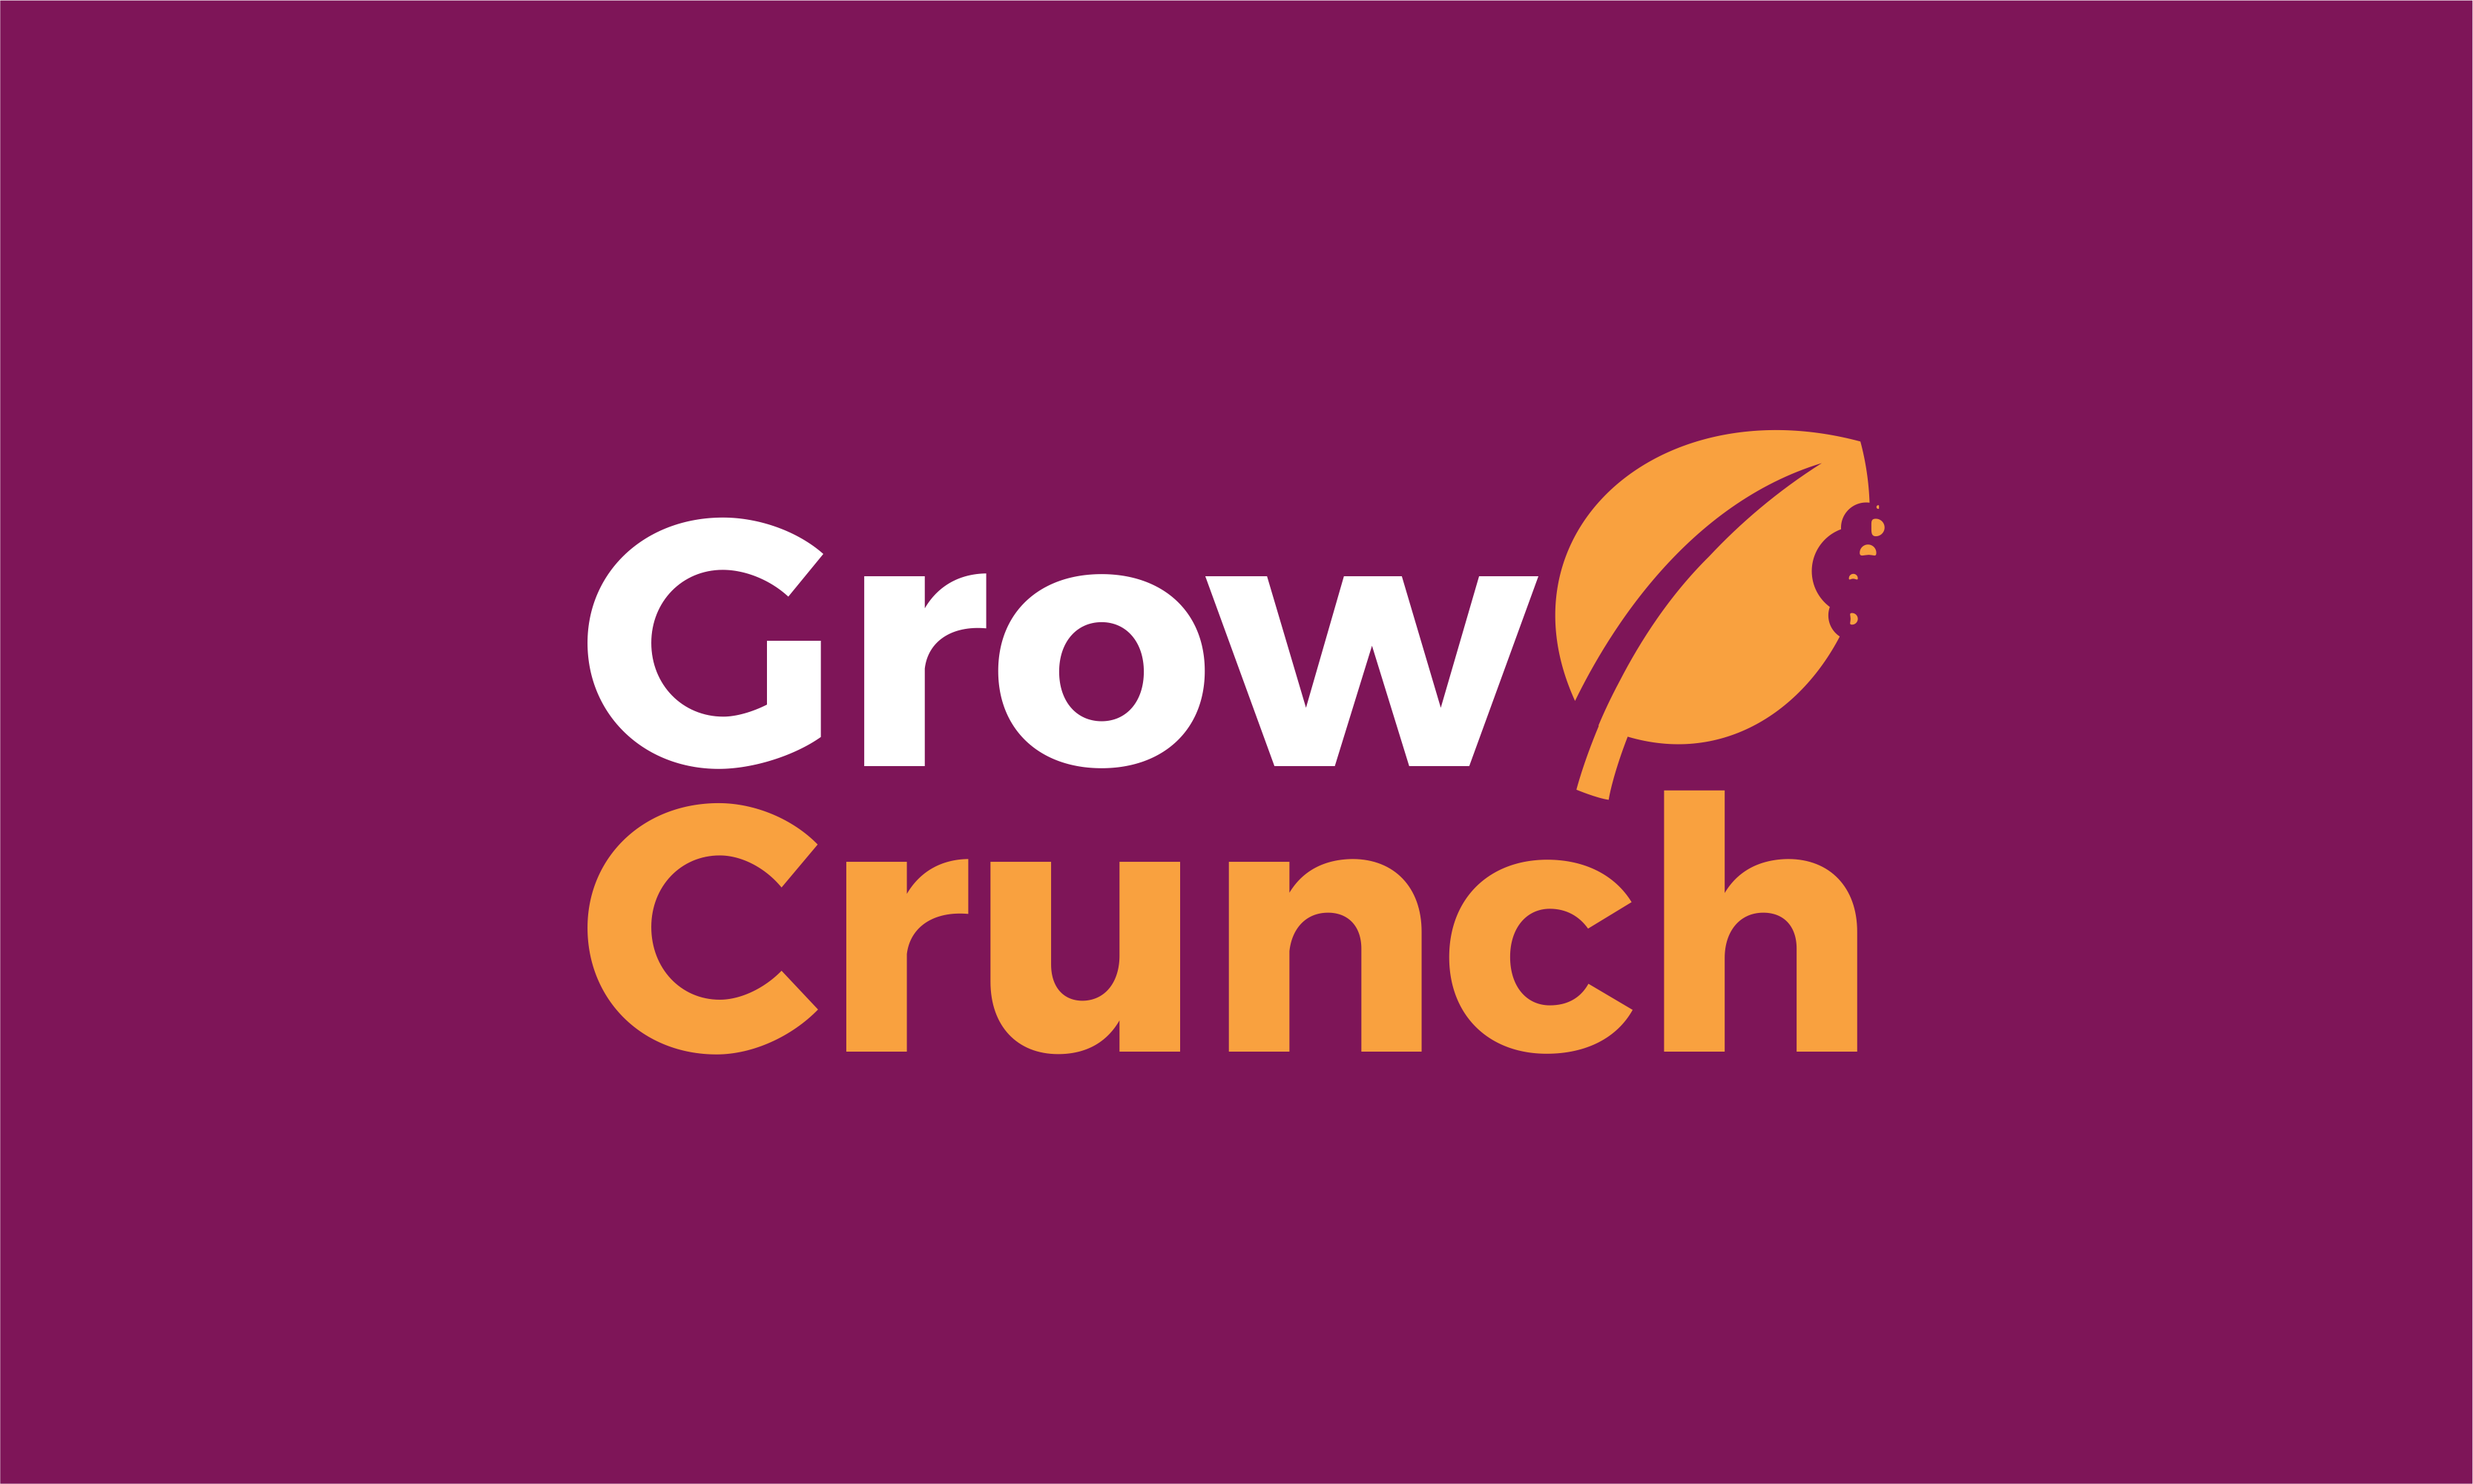 Growcrunch